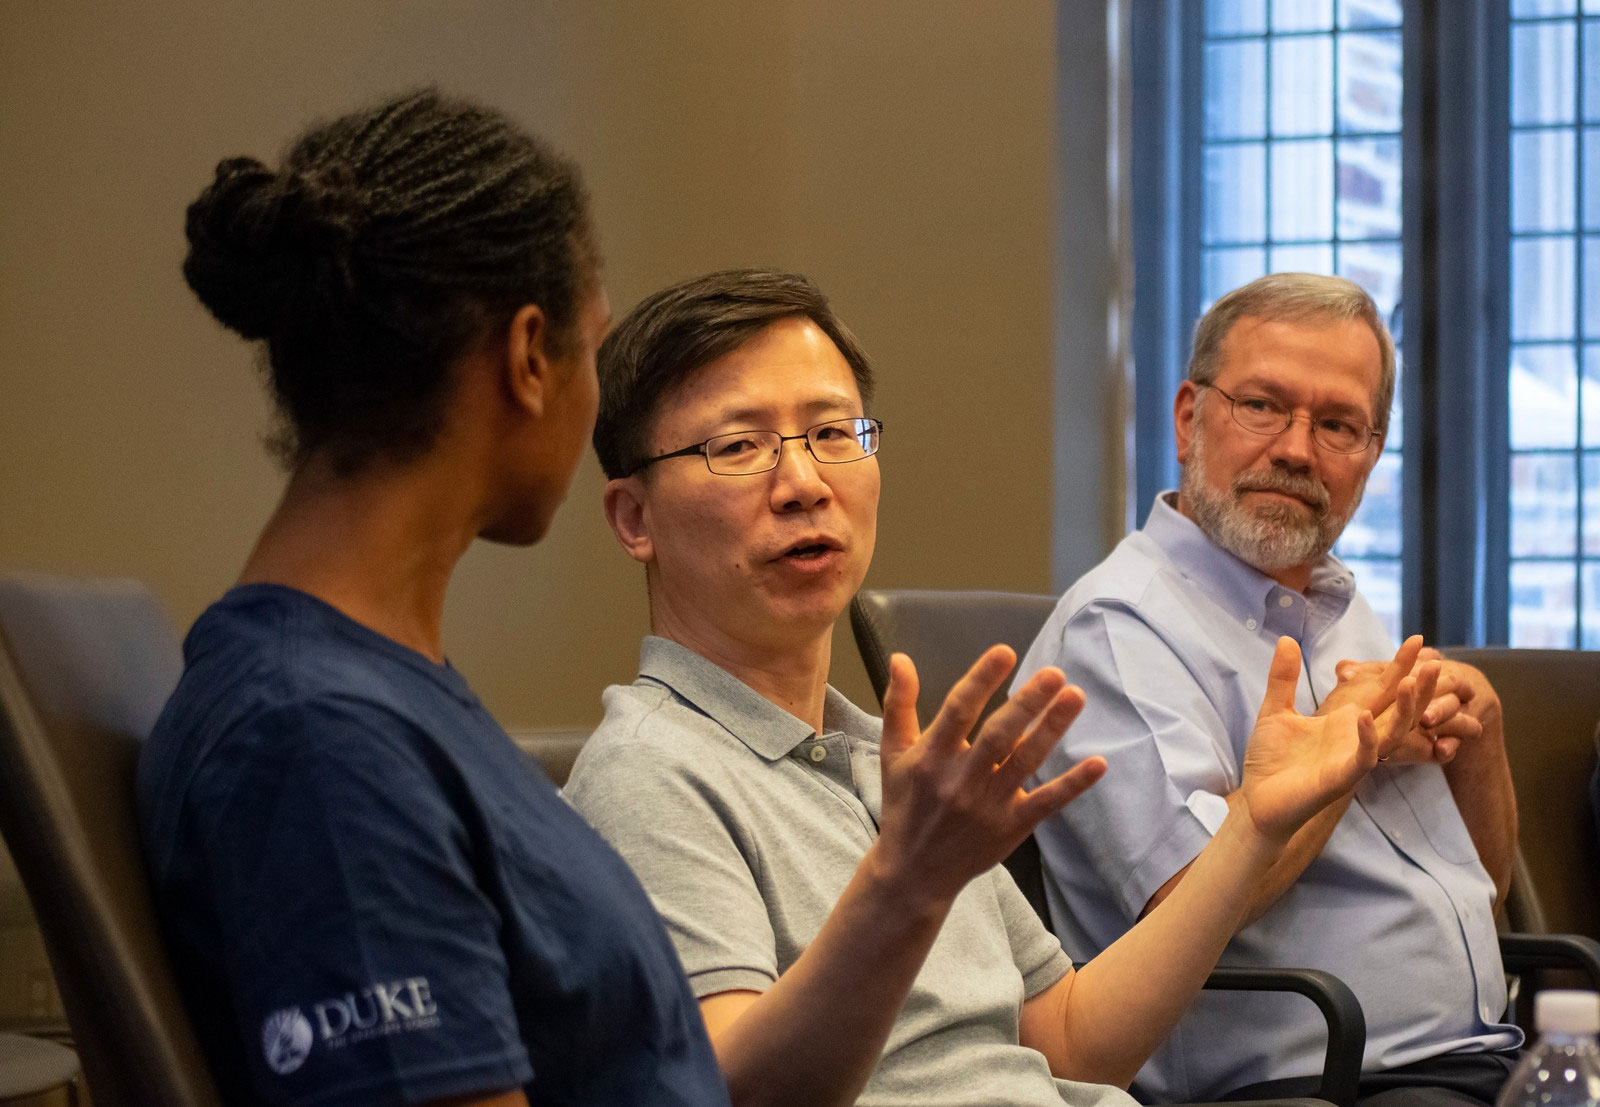 Faculty champion Jiyong Hong (center) talks with a student during Early Start